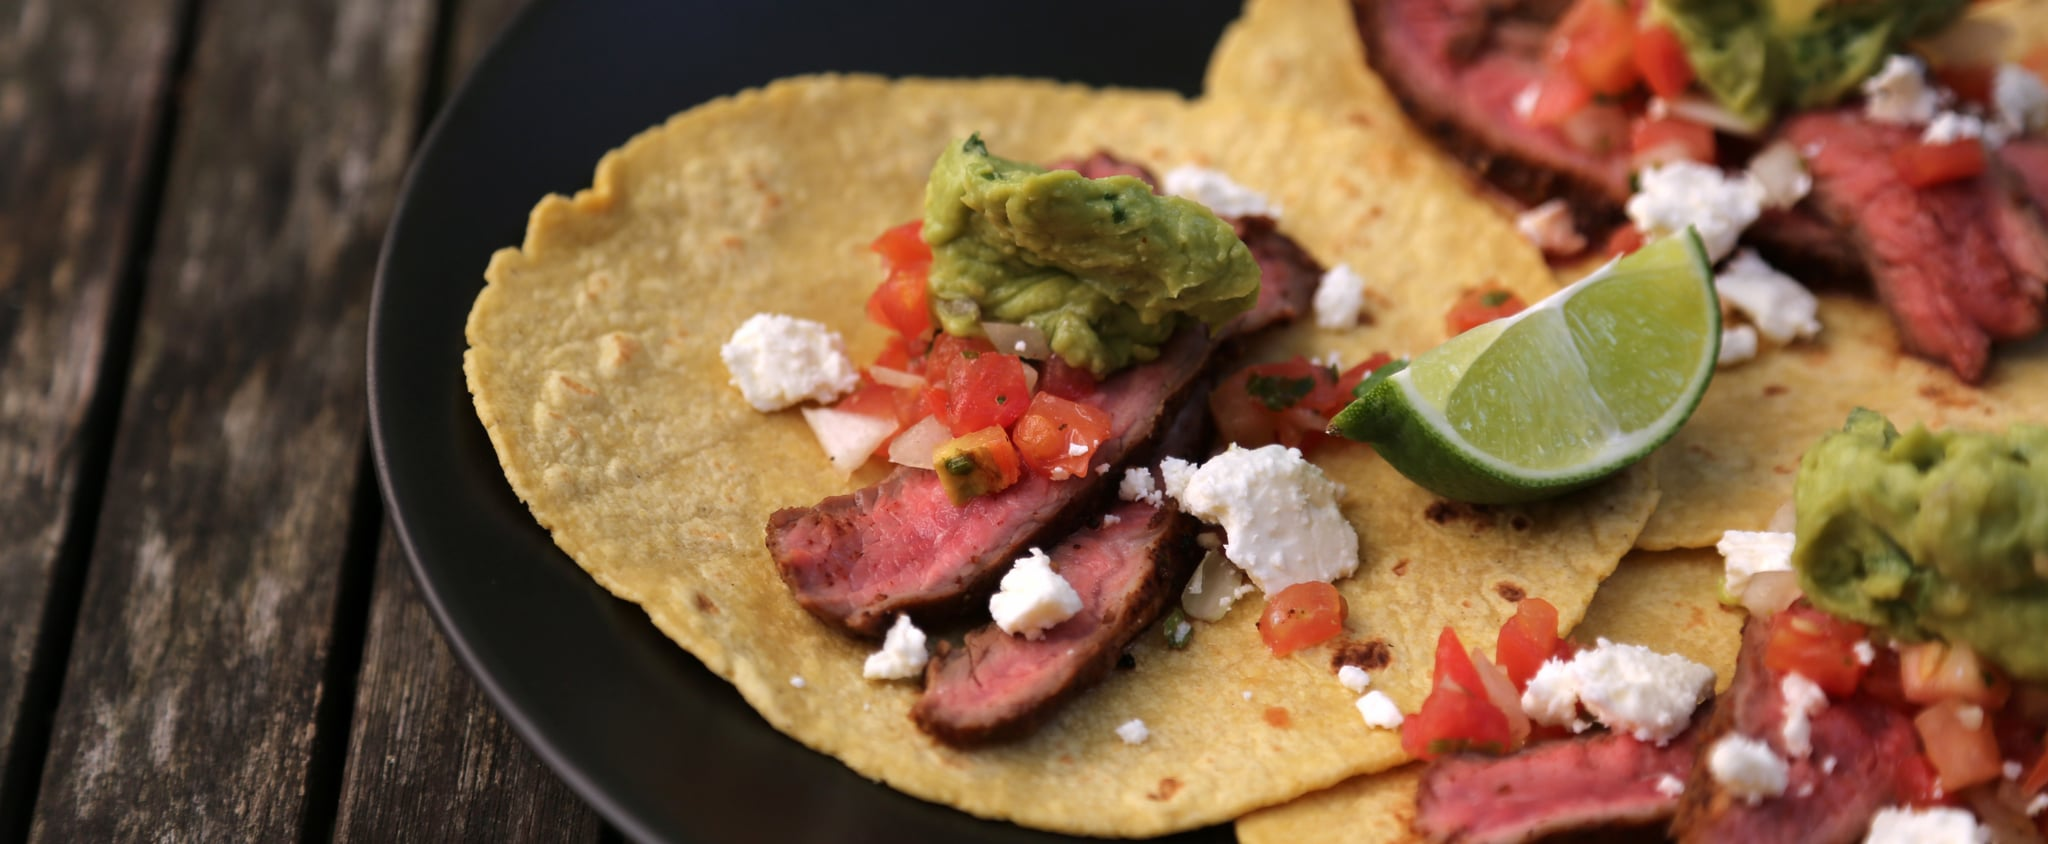 Carnitas, Al Pastor, Barbacoa: Here's the 411 on Mexican Meats